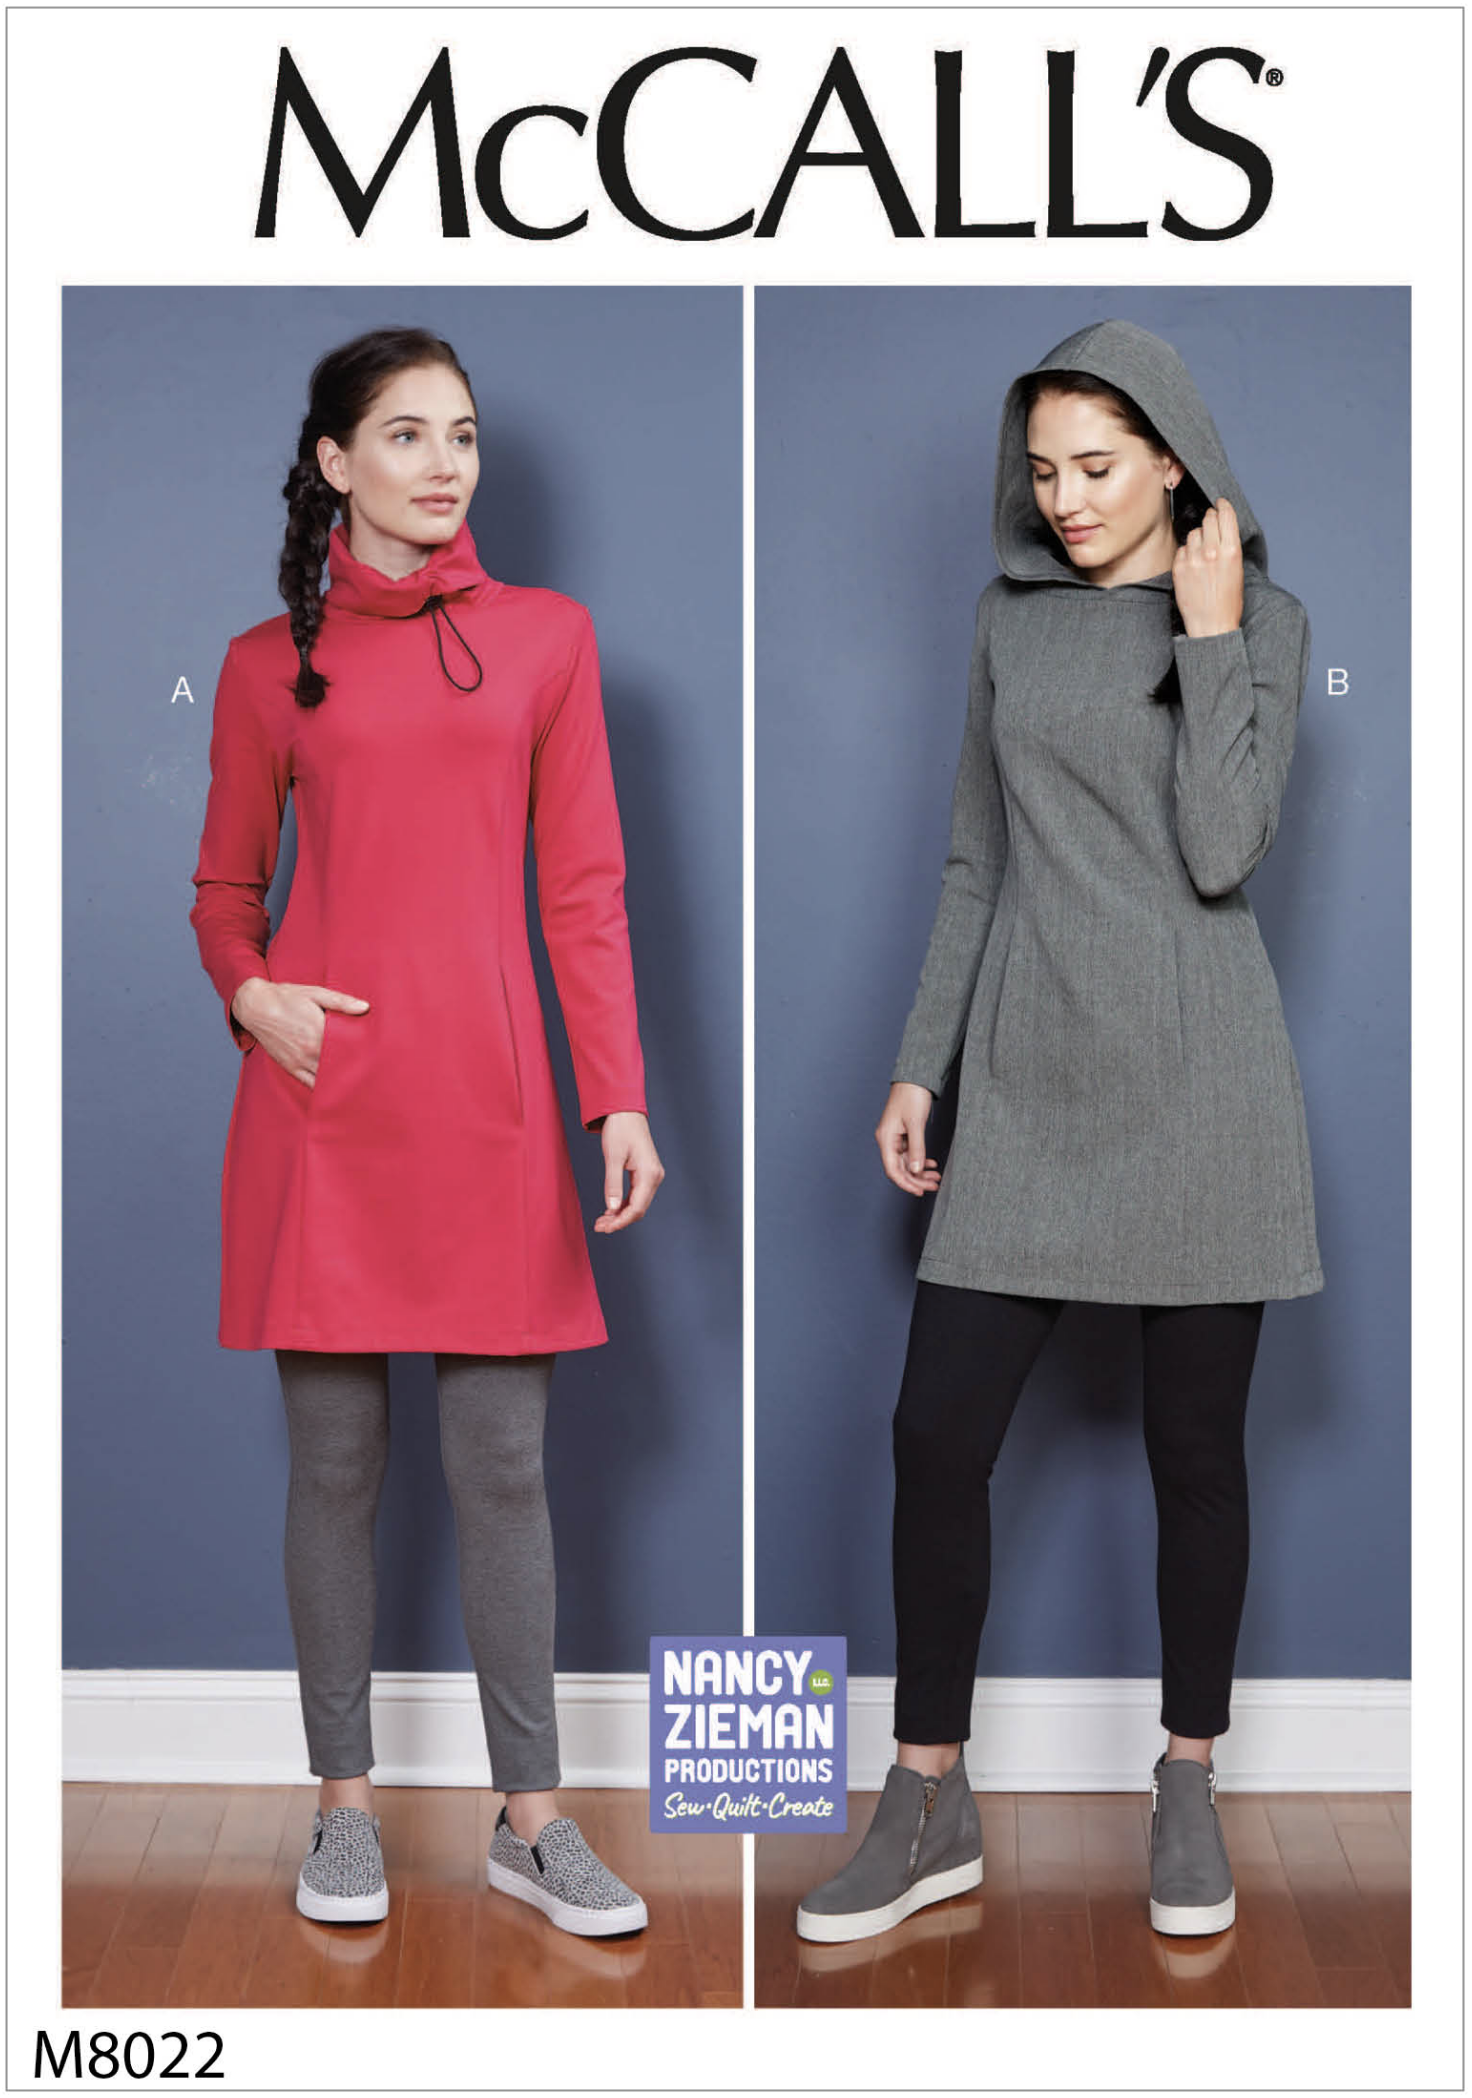 Nancy Zieman Productions McCall's M8022 Tunic and Dress Pattern available at ShopNZP.com